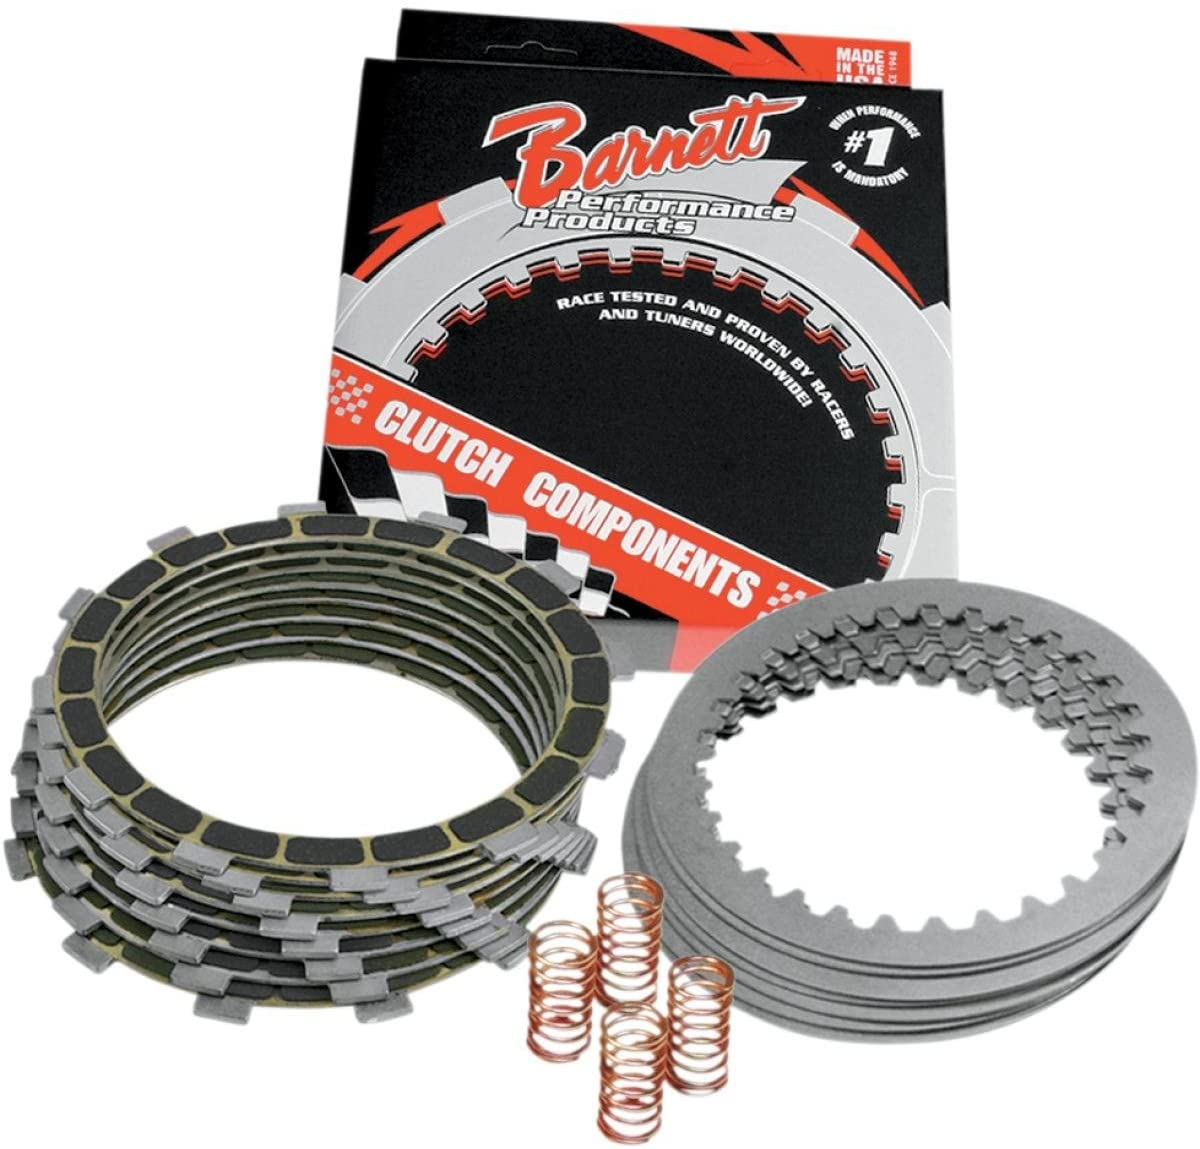 Barnett Performance Products 303-45-10025 - Complete Clutch Kit